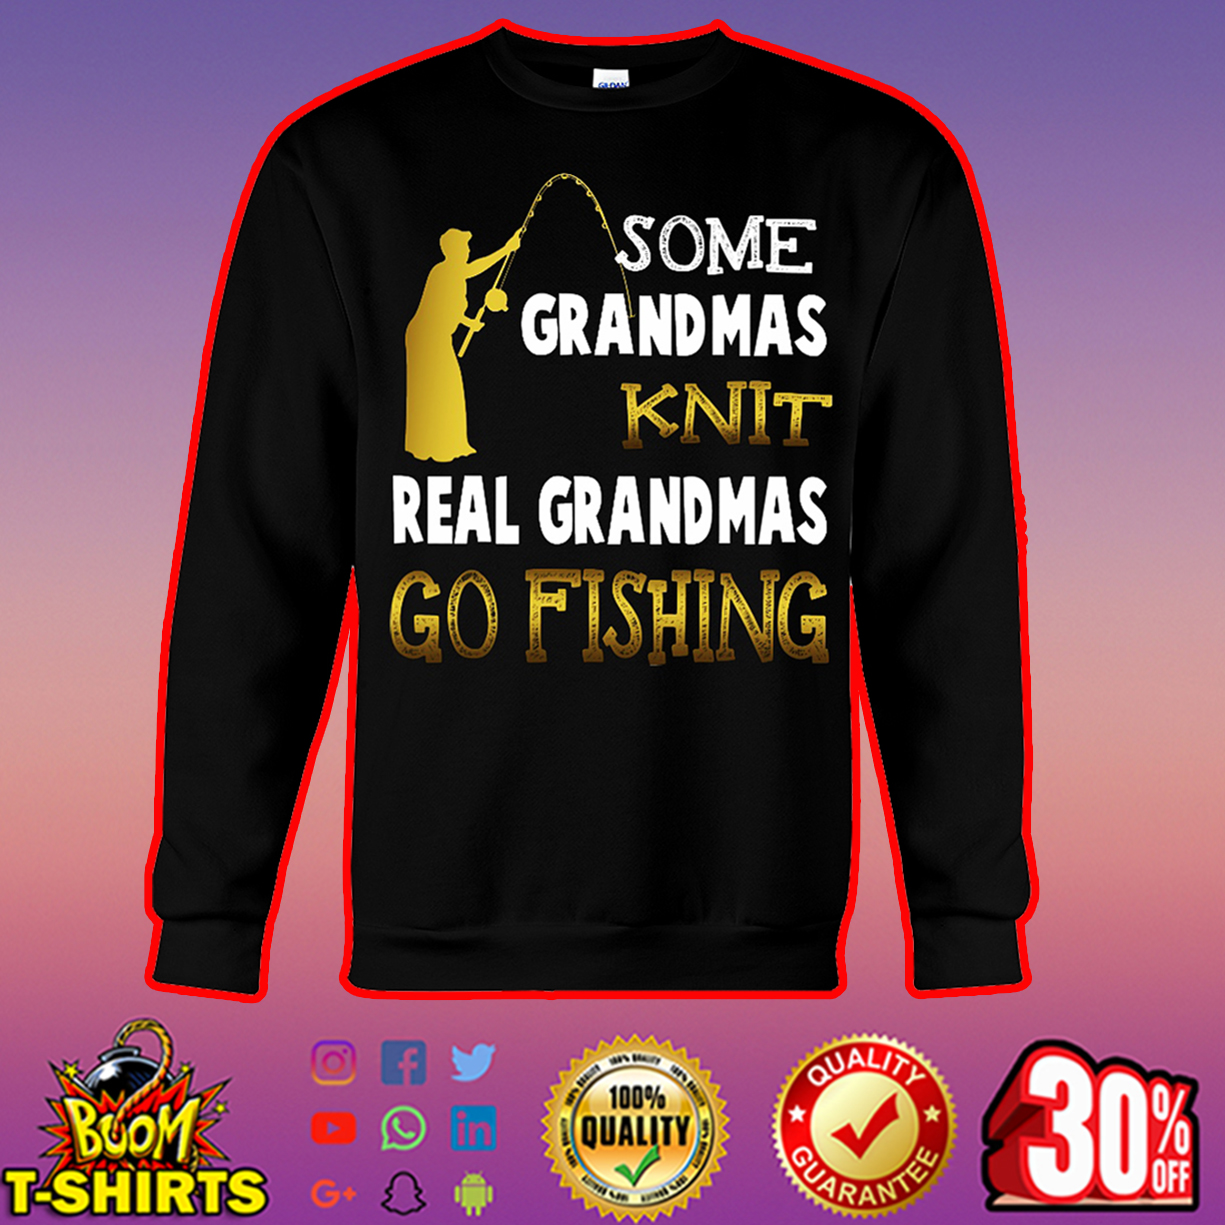 Some grandmas knit real grandmas go fishing sweatshirt